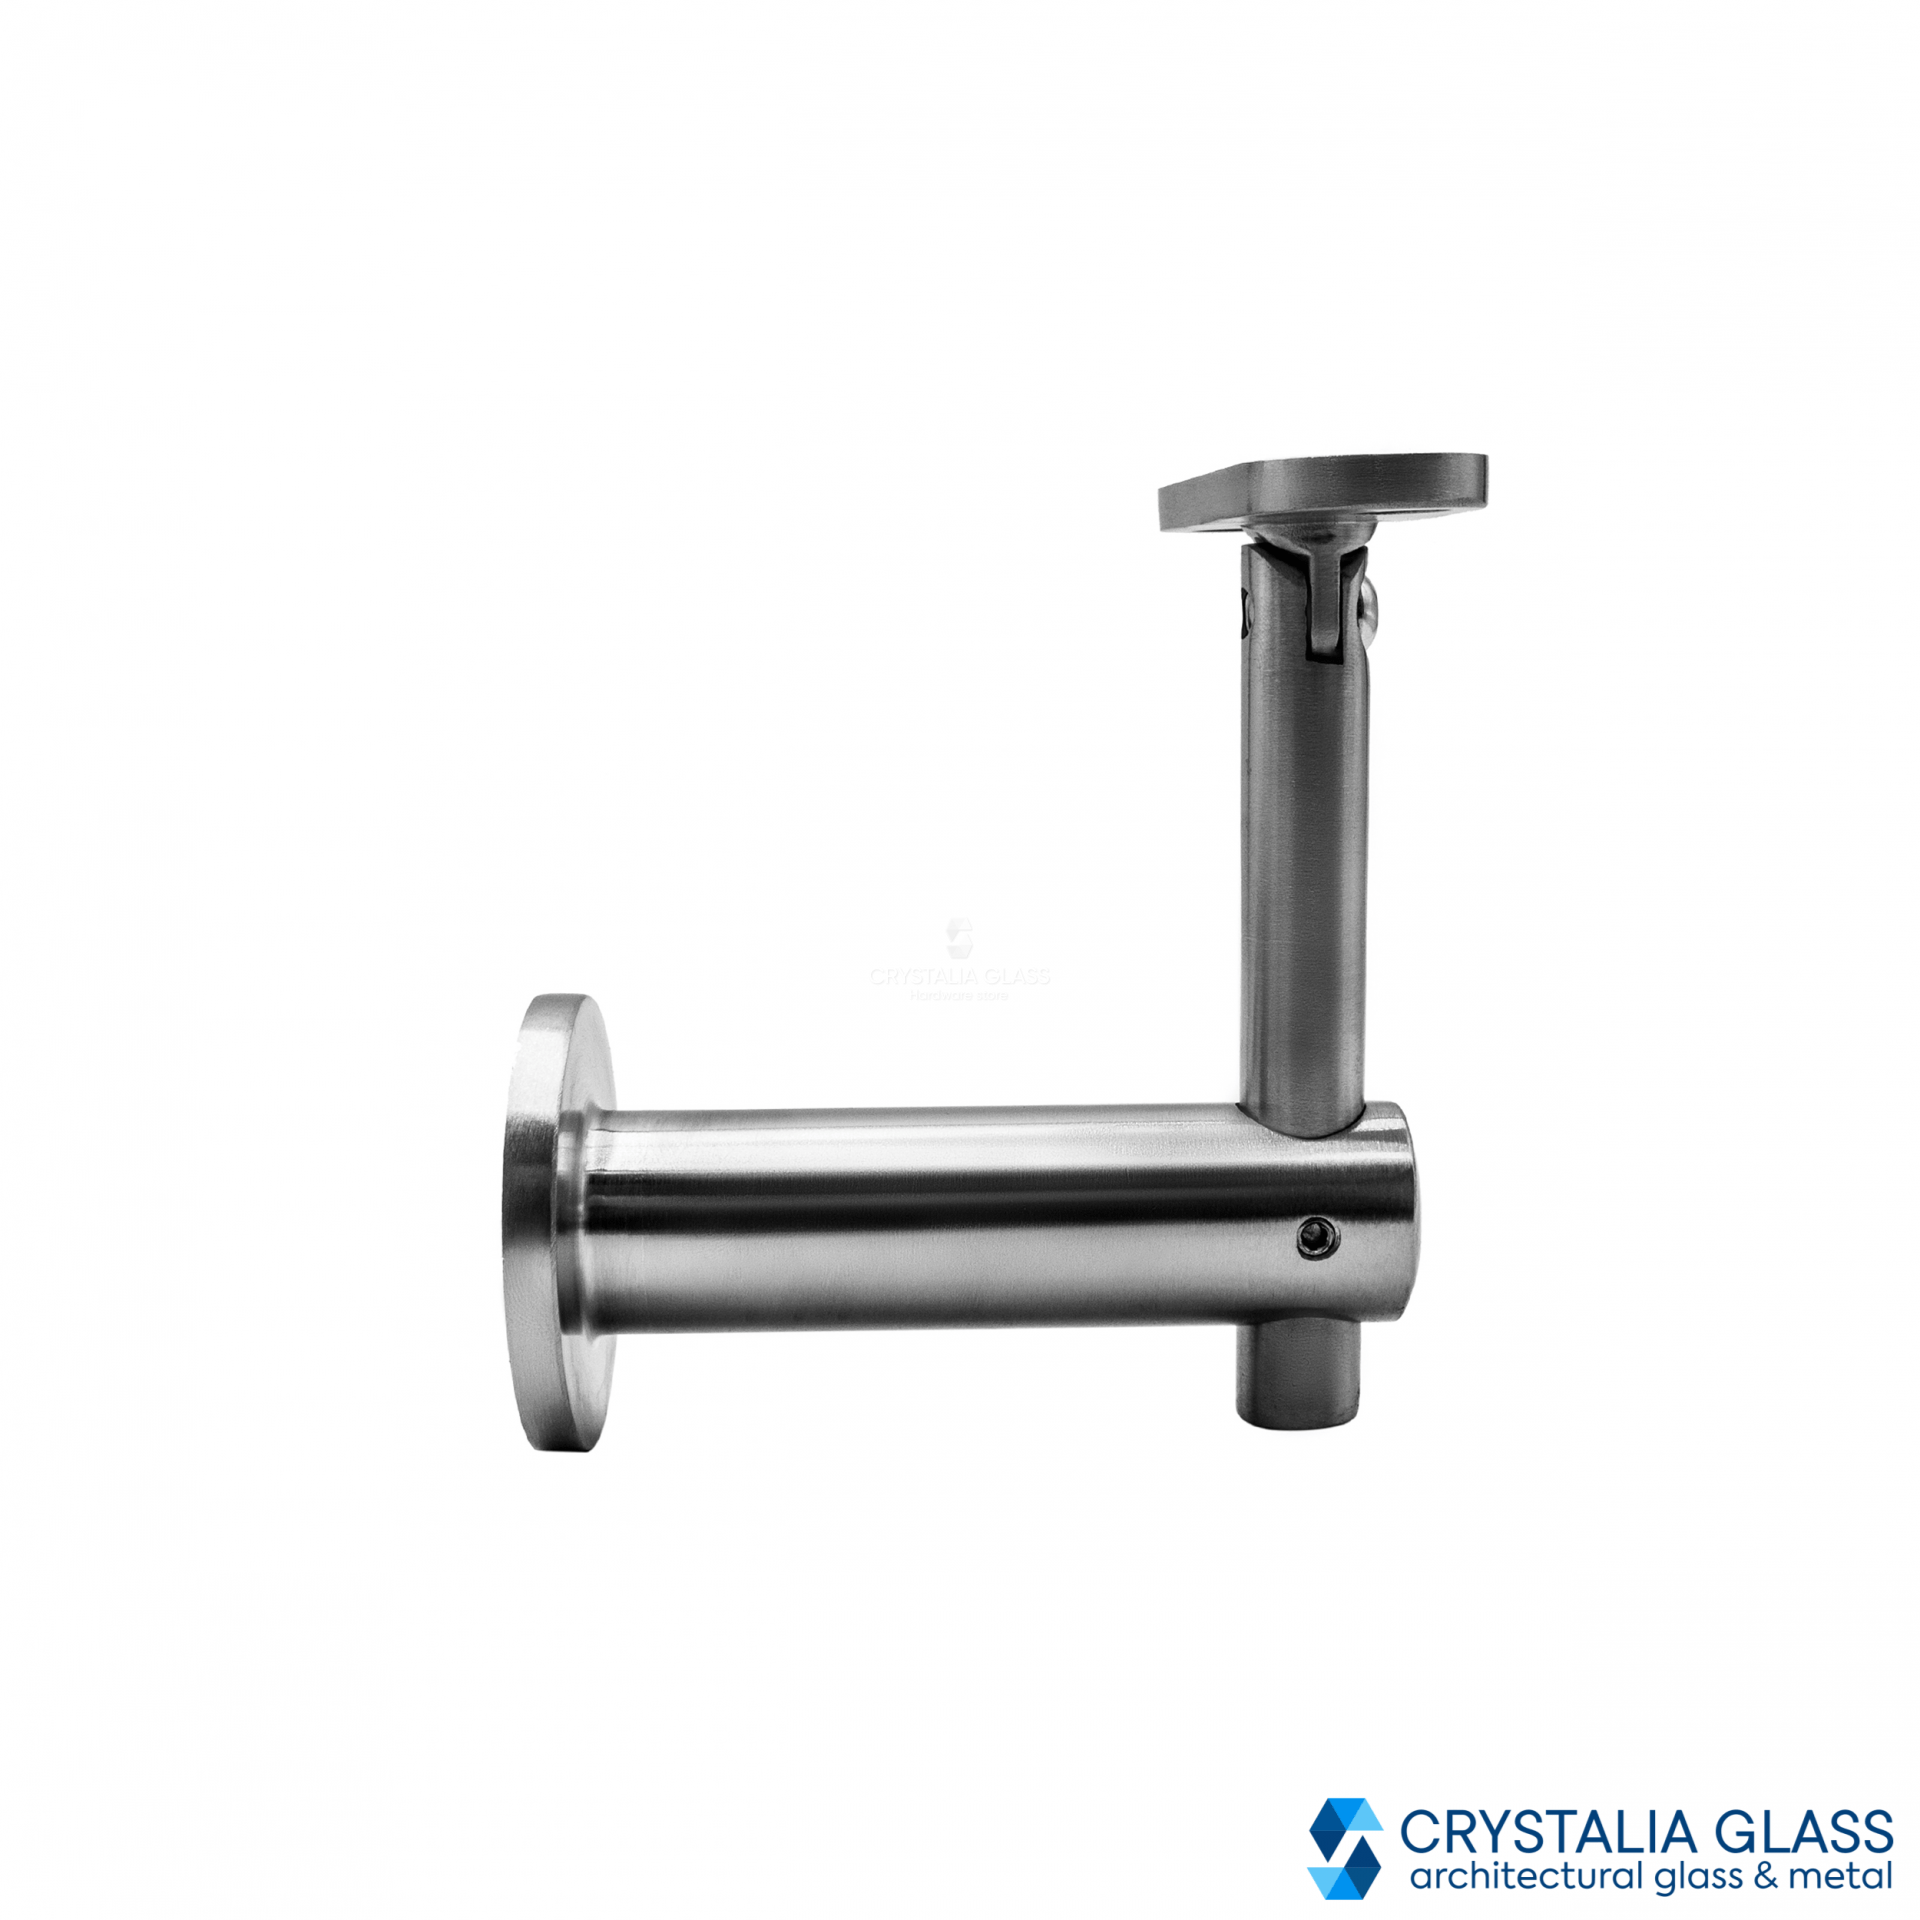 CG Brushed Stainless Wall Mounted Hand Rail Bracket with Flat Saddle